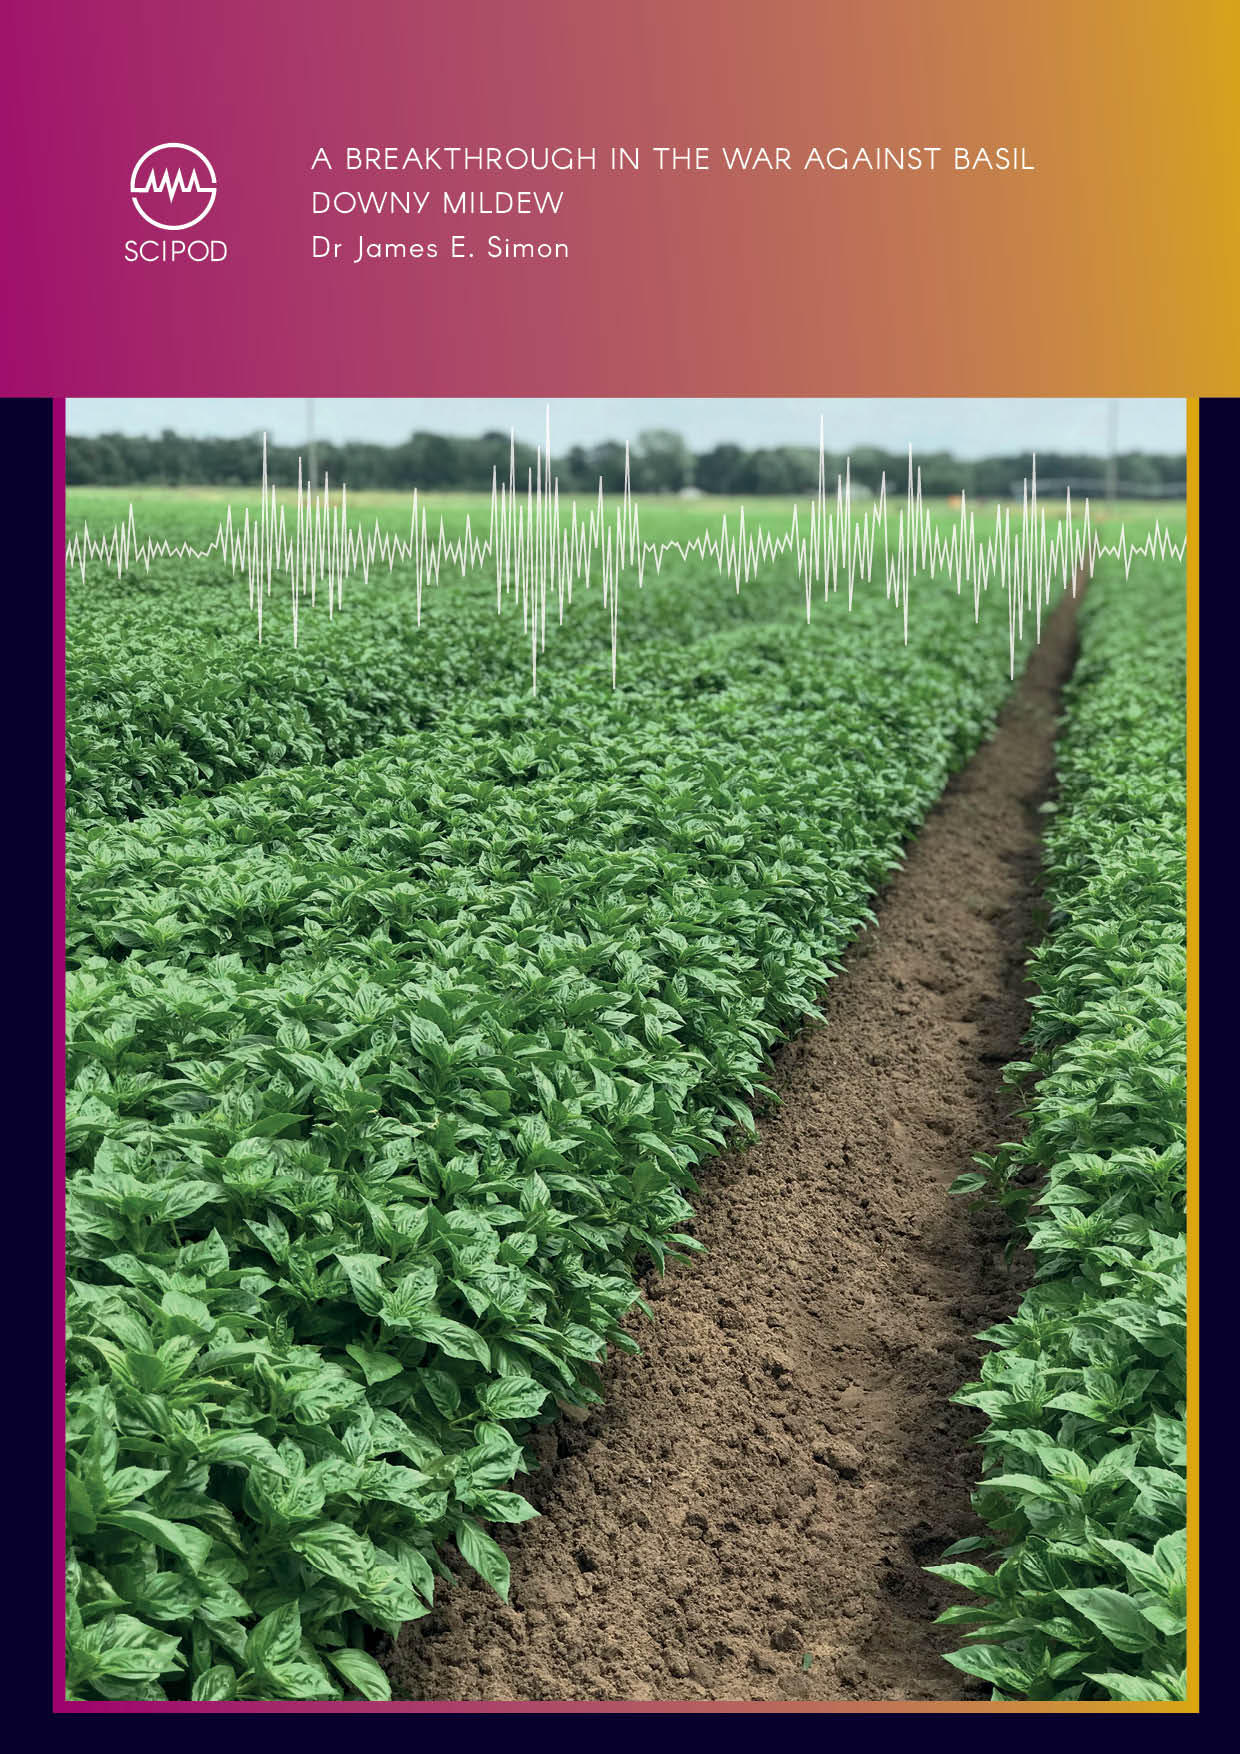 A Breakthrough in the War Against Basil Downy Mildew, Dr James Simon at Rutgers University